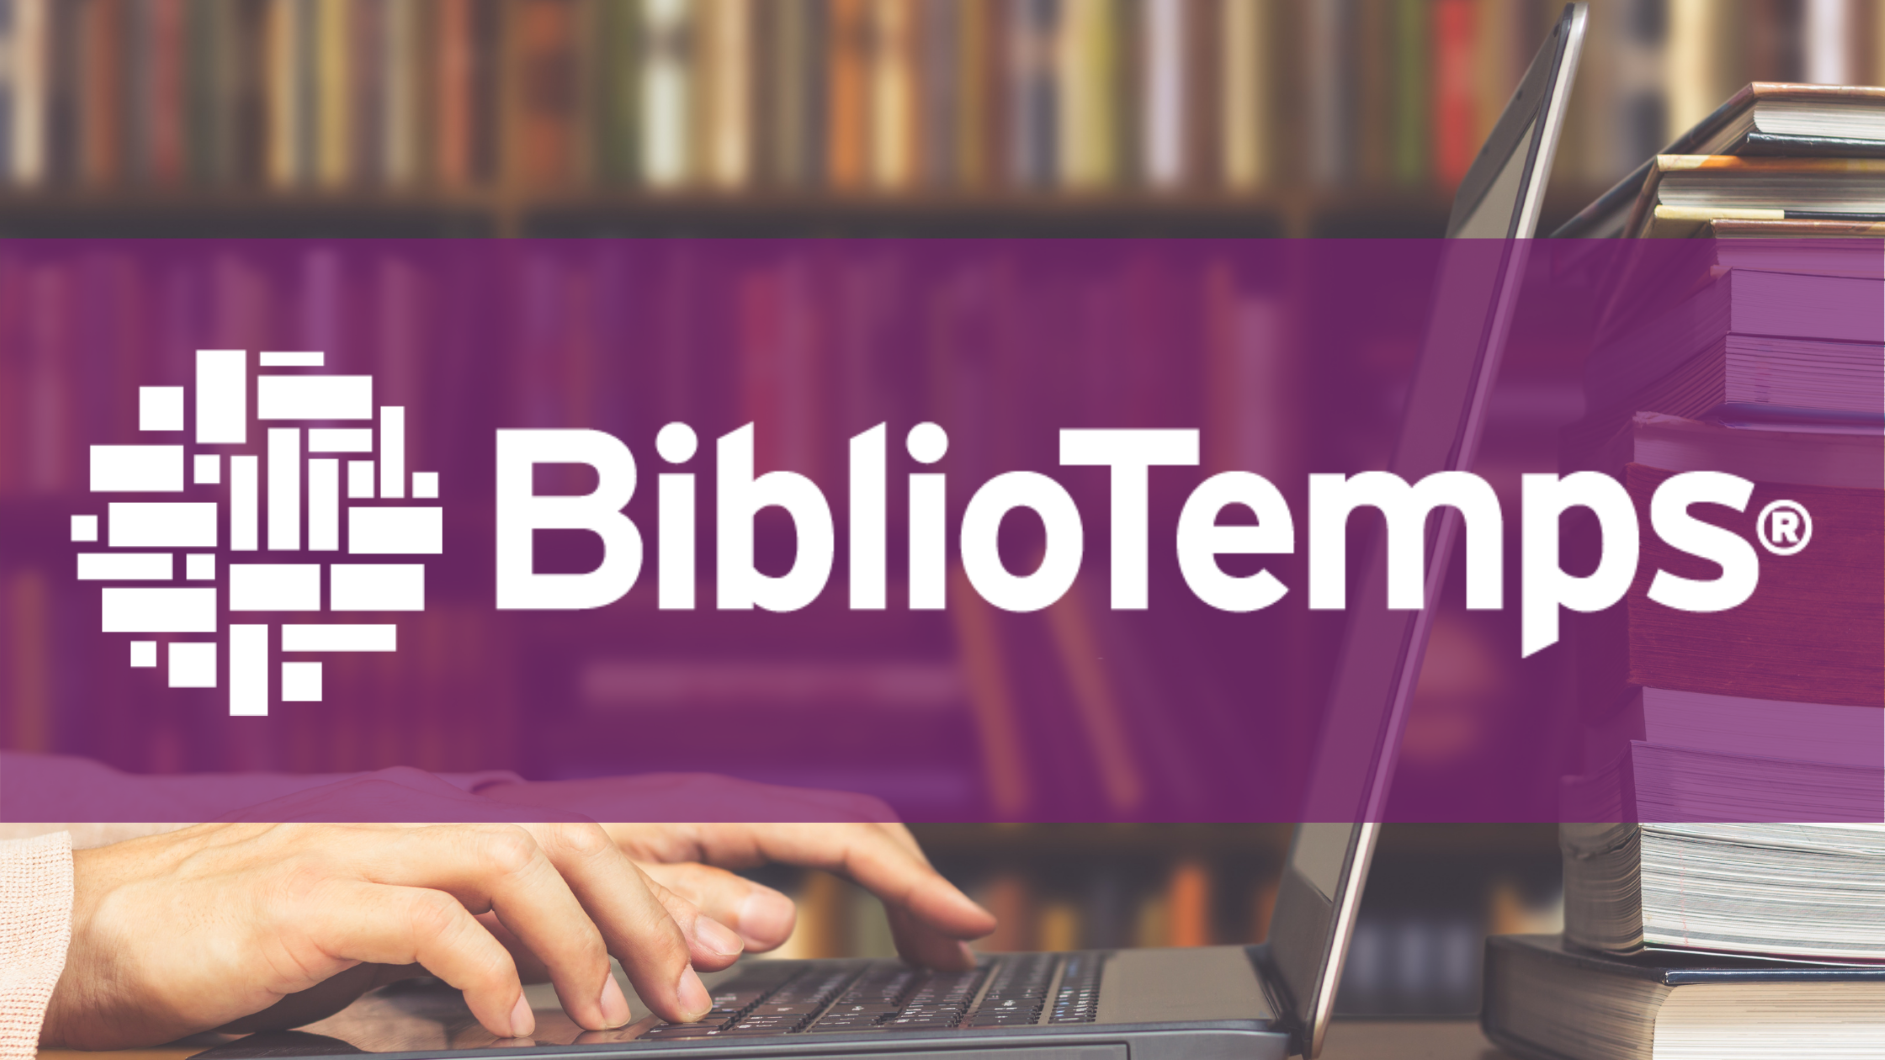 BiblioTemps Presents: We're All Librarians Here: How to Stop Talking Yourself Out of Things You Can Do